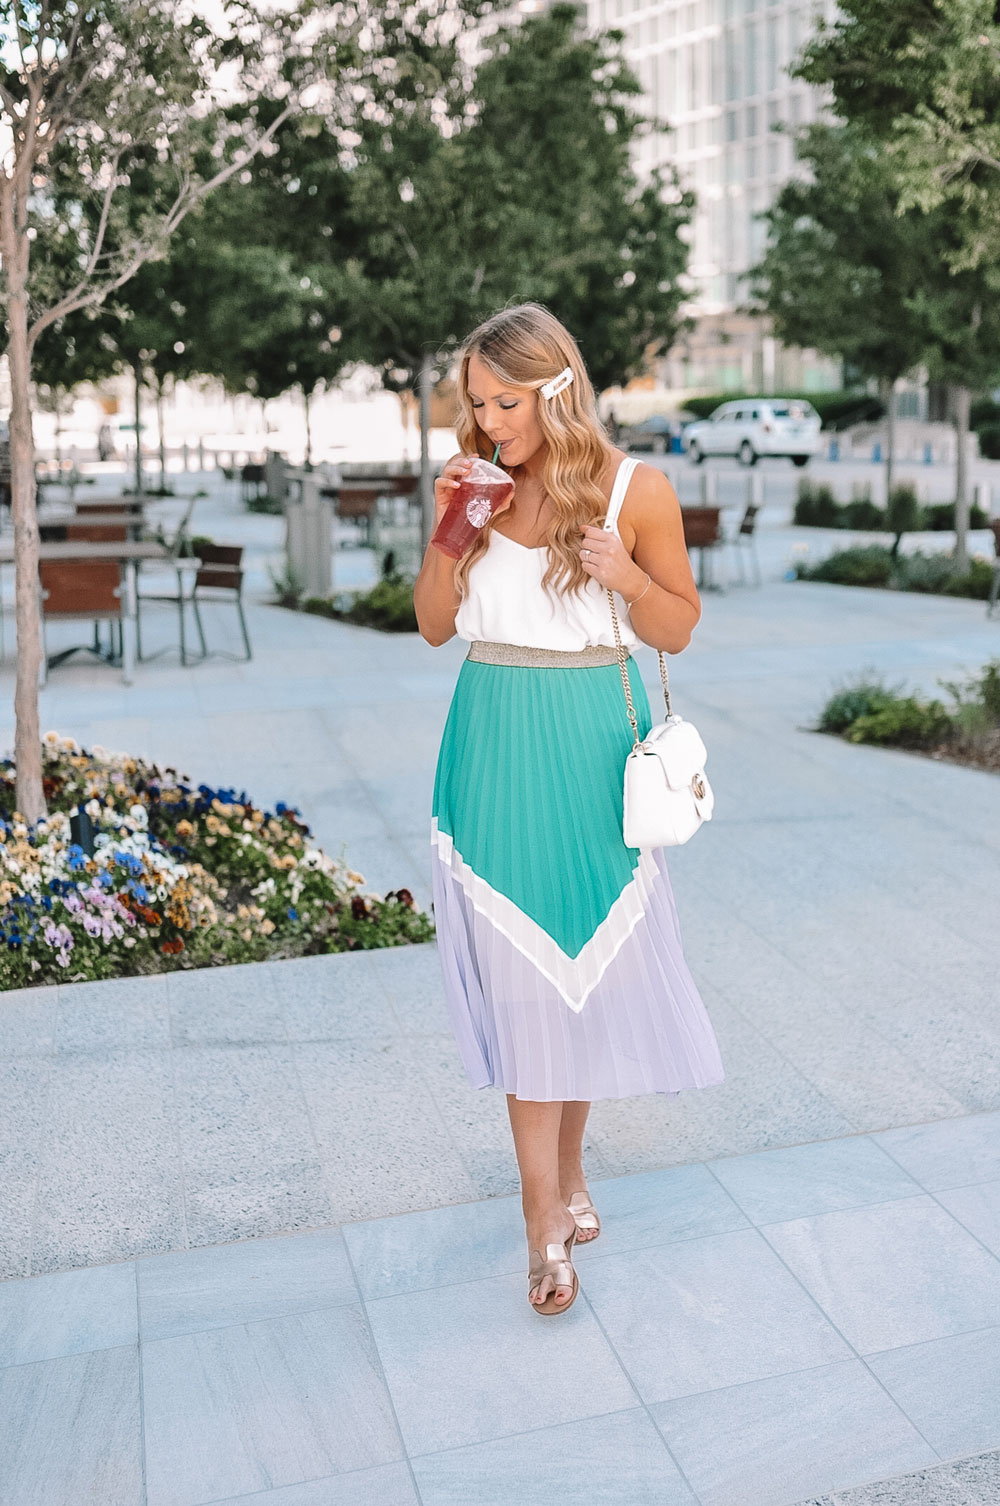 OKC Blogger Amanda Martin wearing a pleated skirt and Swarovski bracelet while sipping her Starbucks